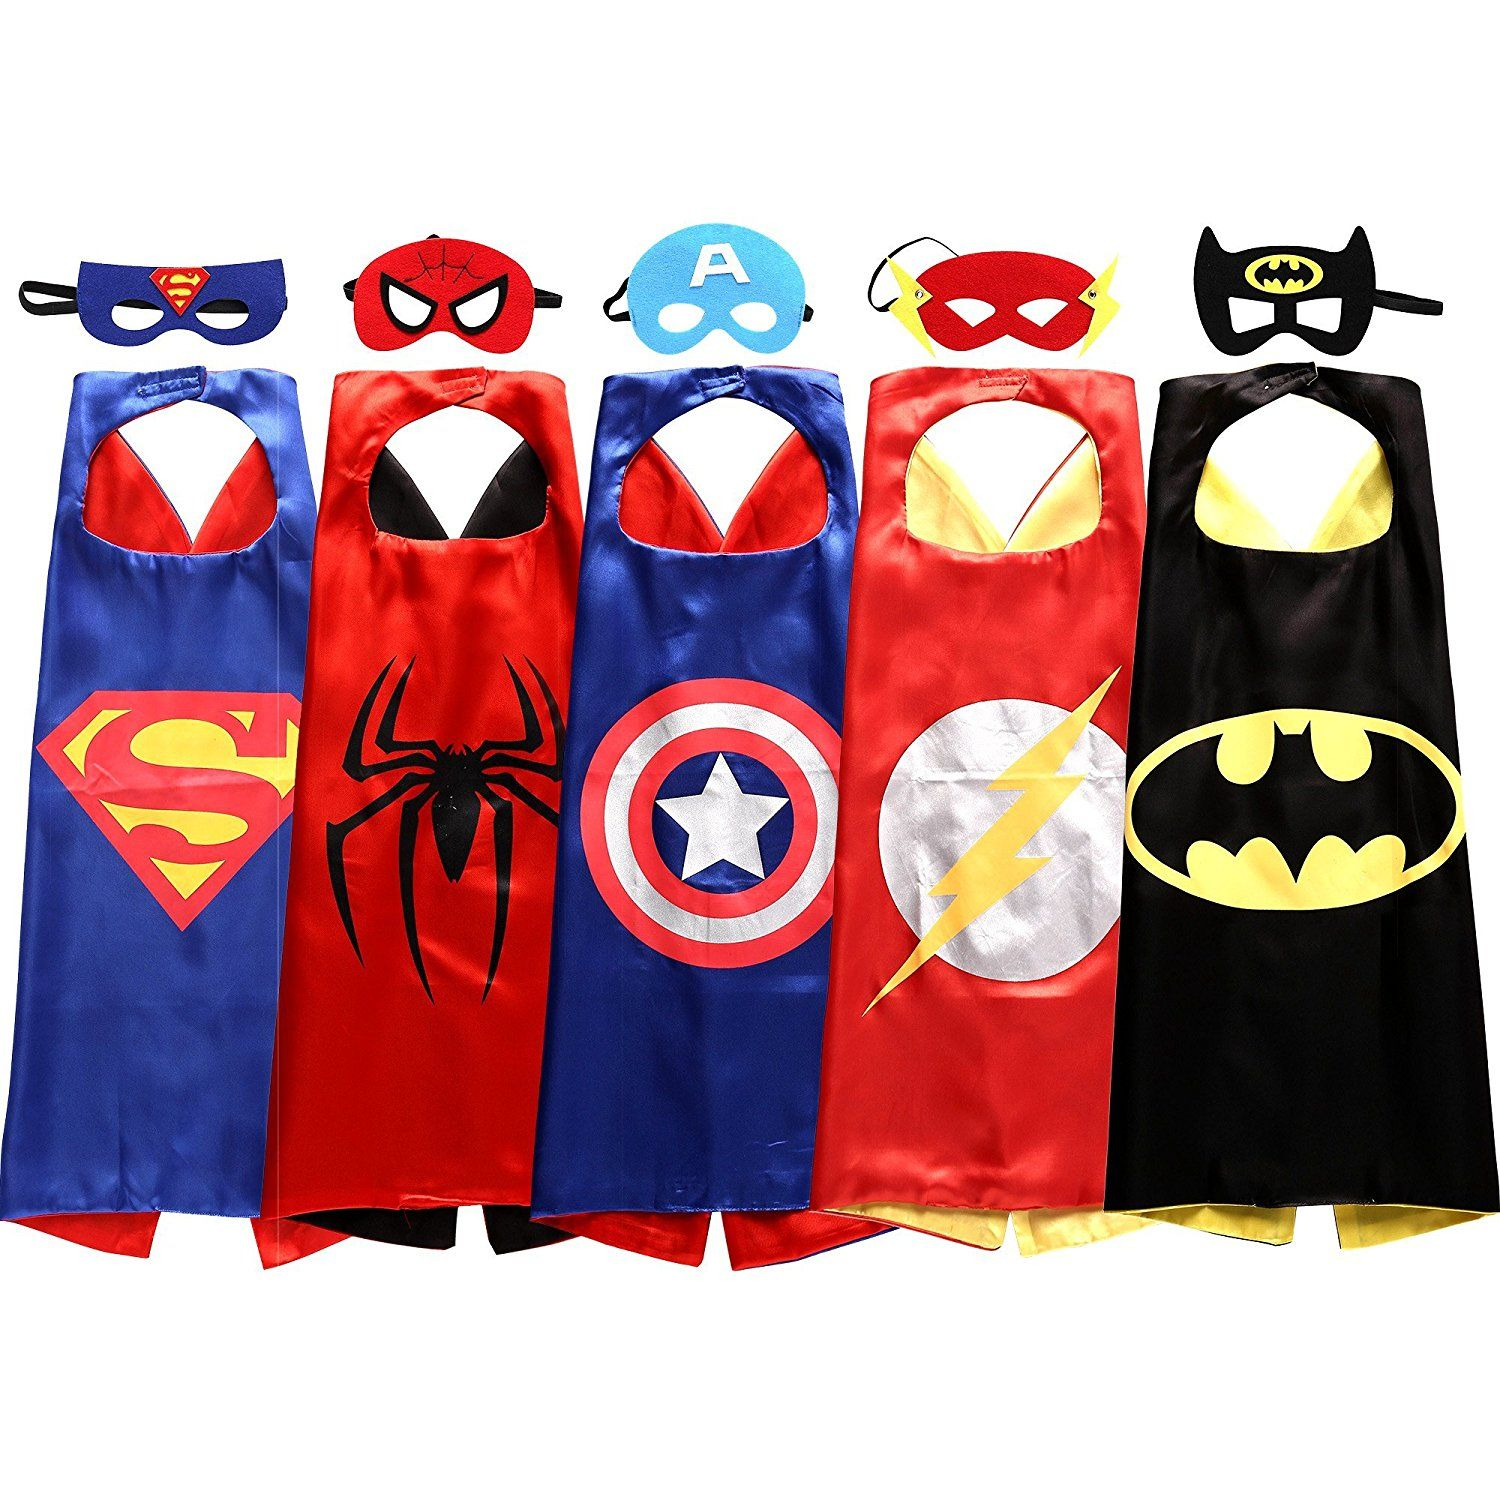 Double sides Satin Fabric Super hero cape mask Children b Kids Superhero Capes